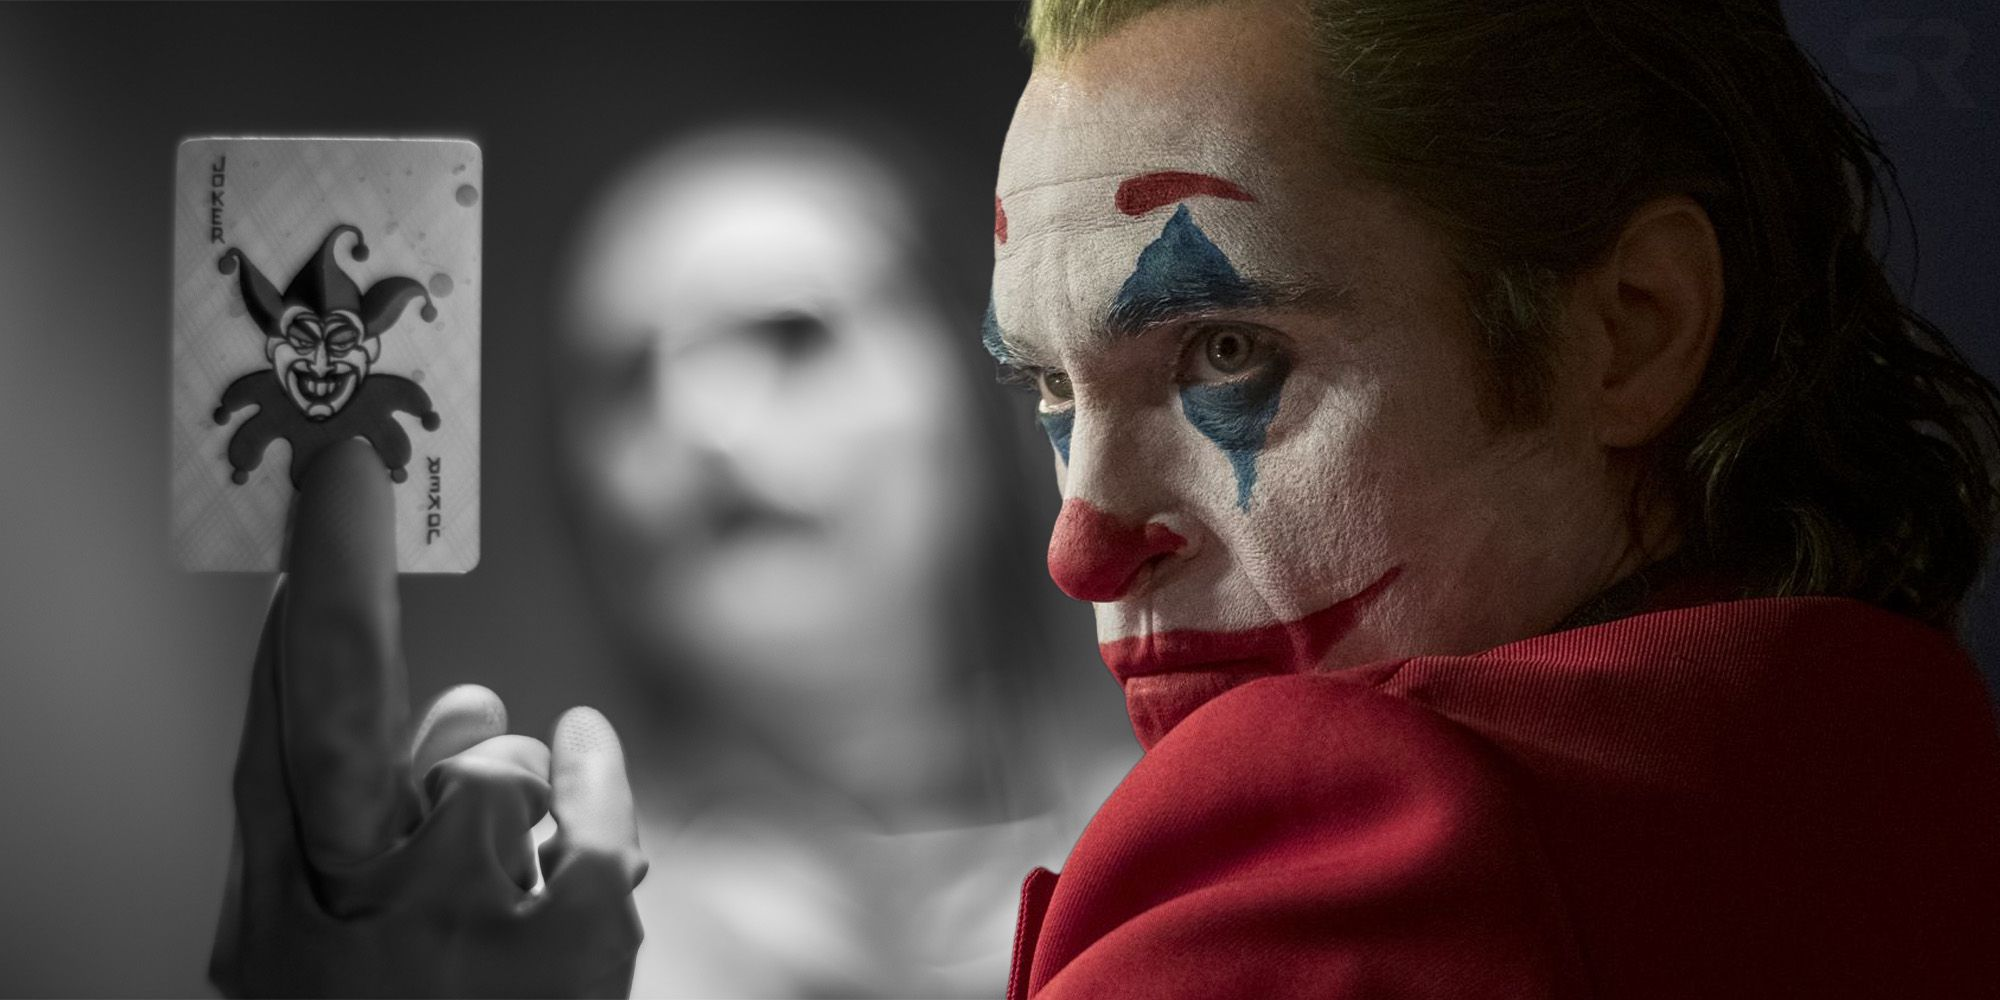 Why Jared Leto's Joker Justice League Look Is Like Joaquin Phoenix's